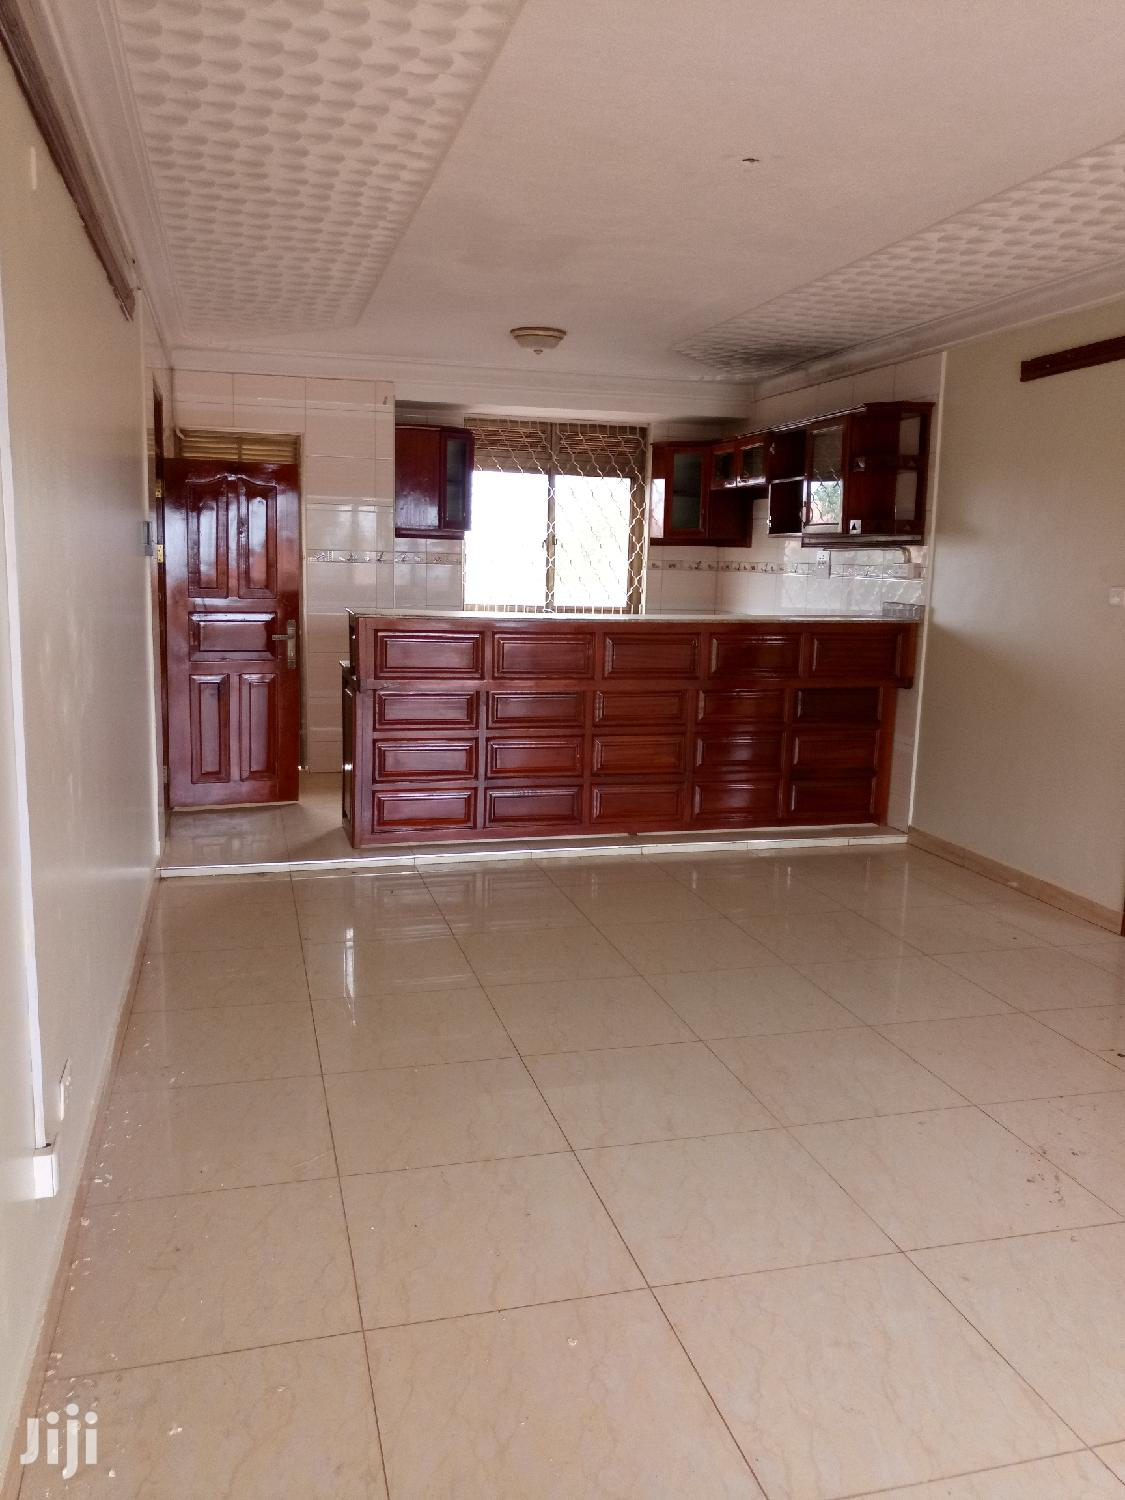 Bukoto Apartment House for Rent